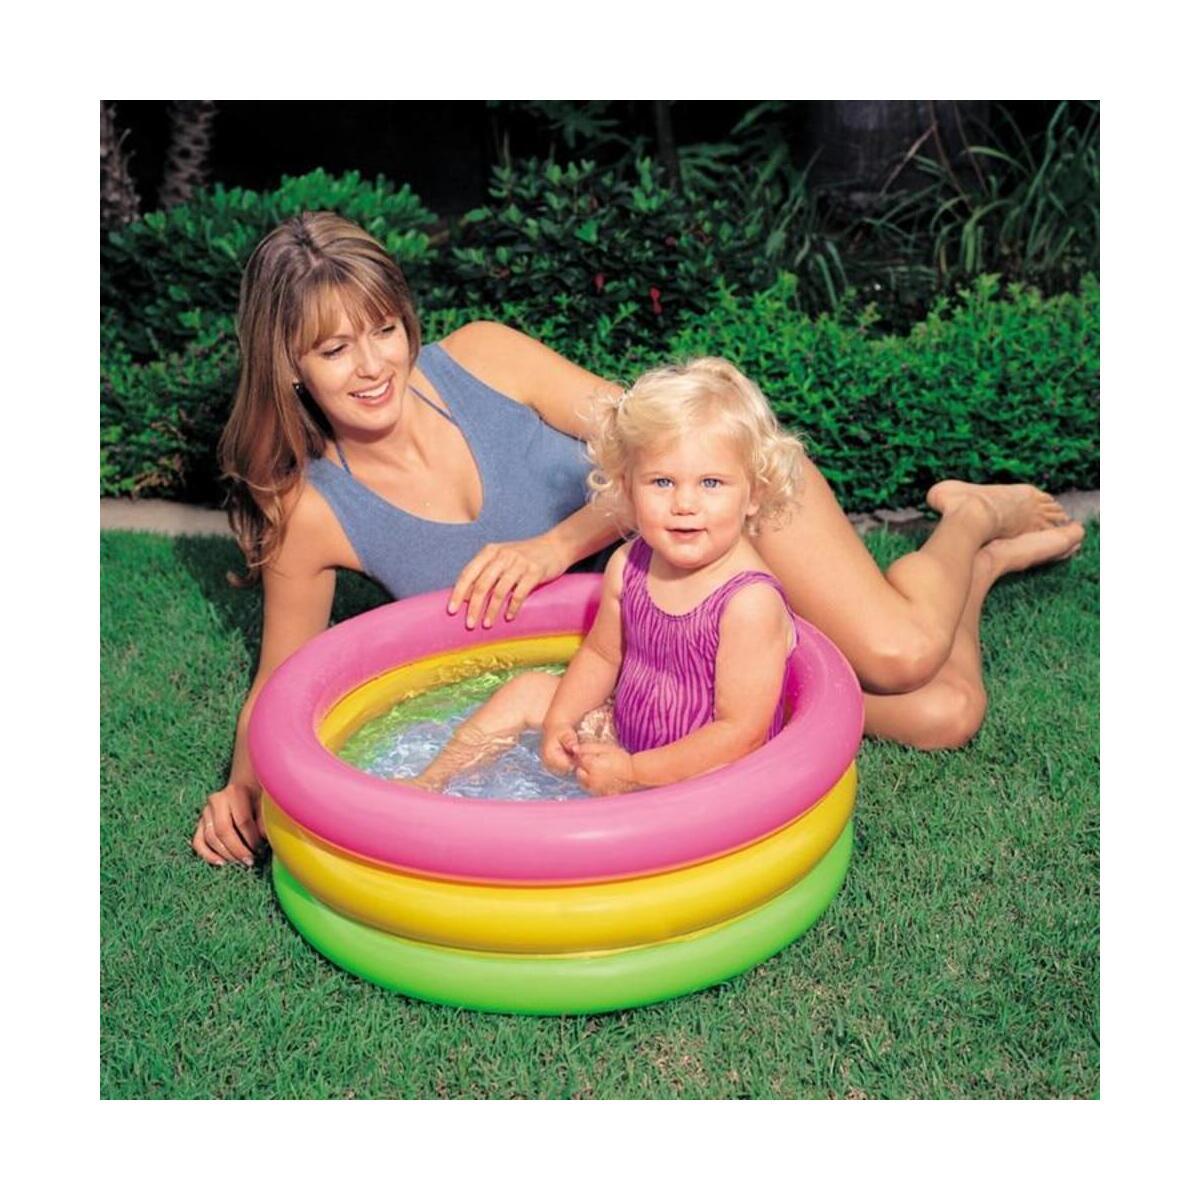 Baby Sunset Glow Inflatable Colorful Swimming Pool